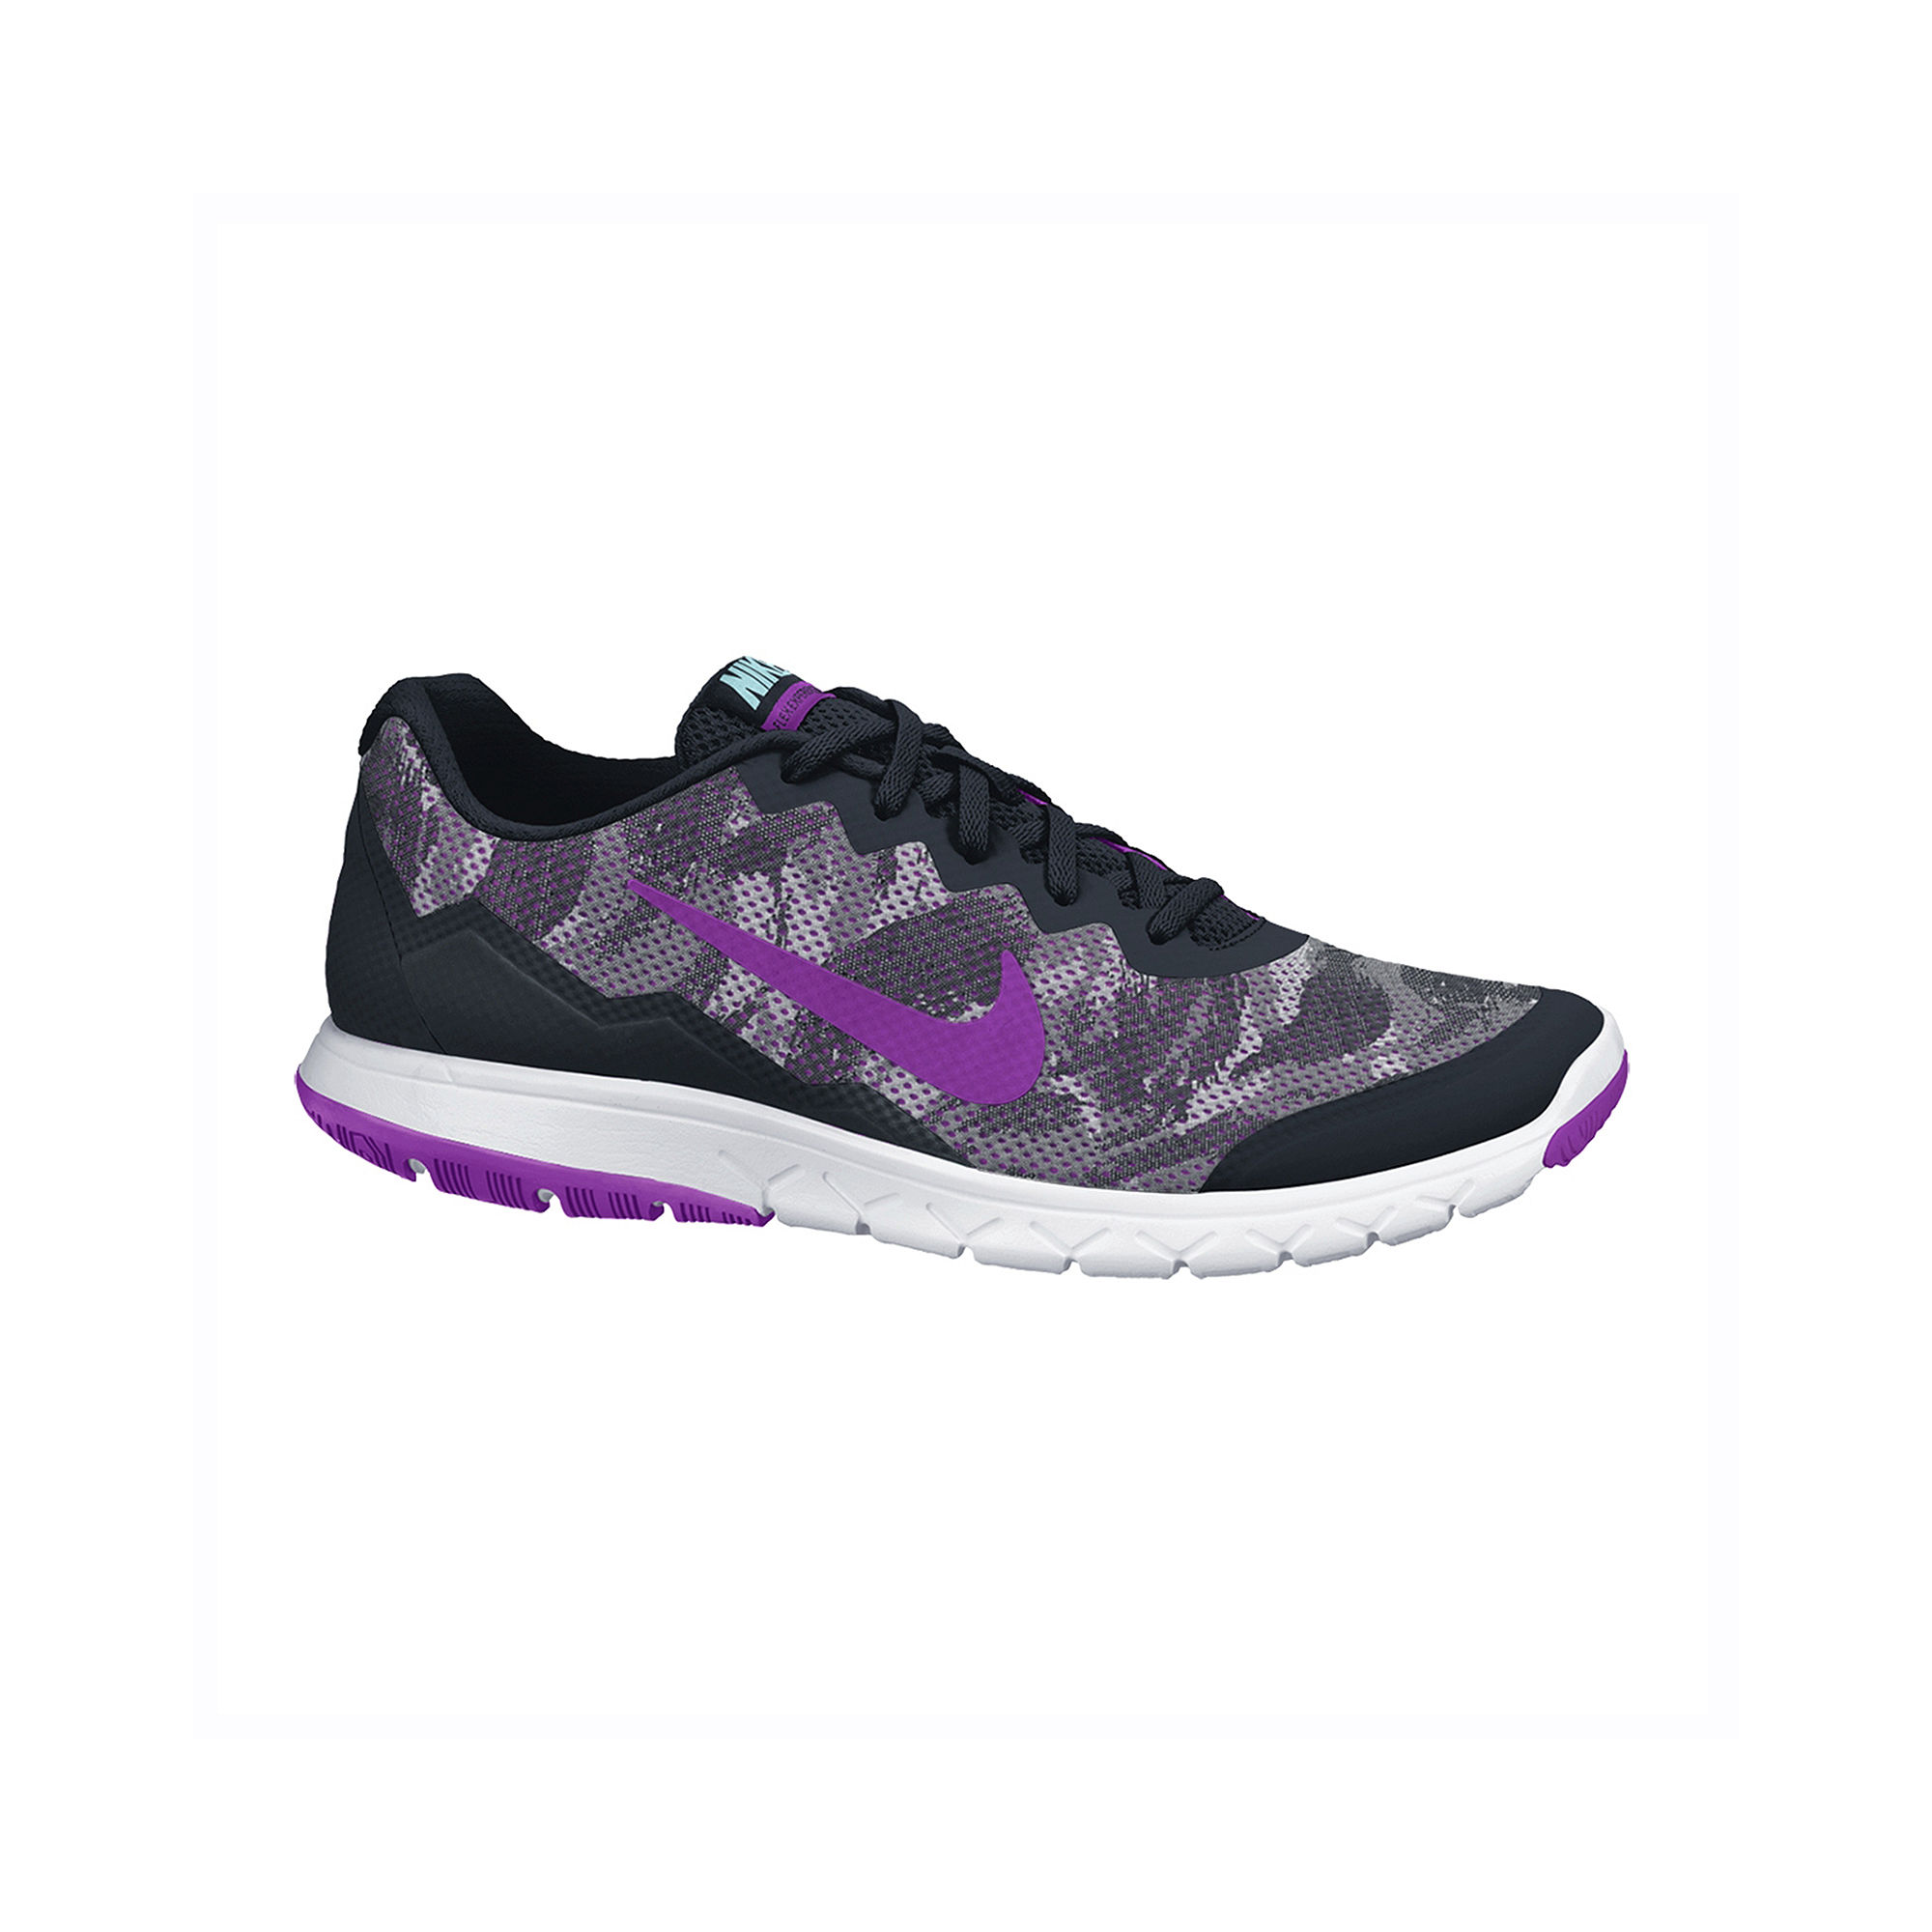 UPC 888507329424 product image for Nike Flex Experience Run 4 Womens  Running Shoes | upcitemdb.